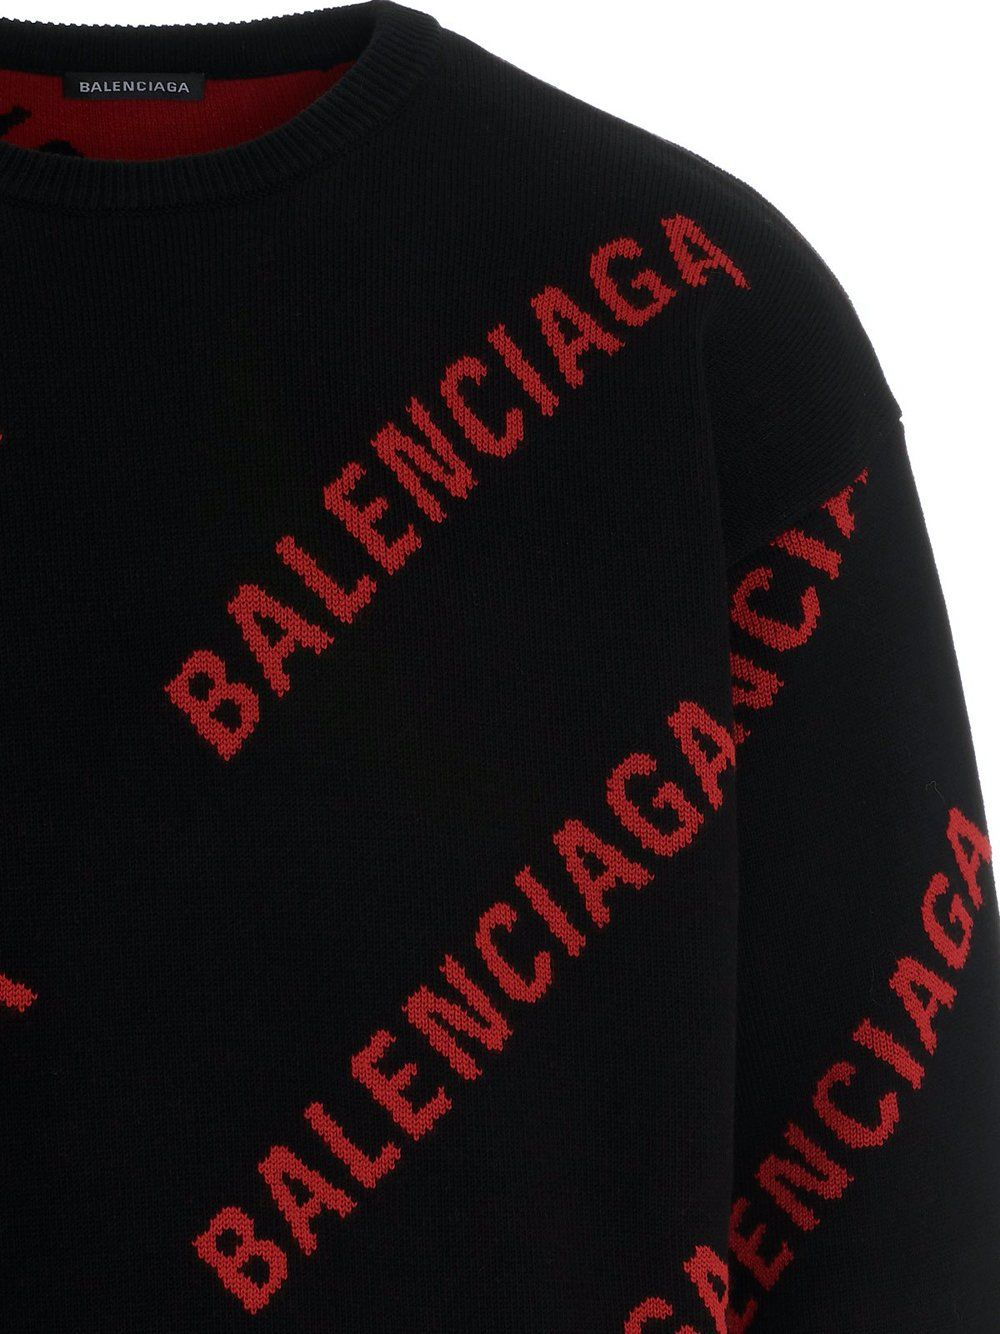 BALENCIAGA All Over Logo Knitted Sweatshirt Black/Red